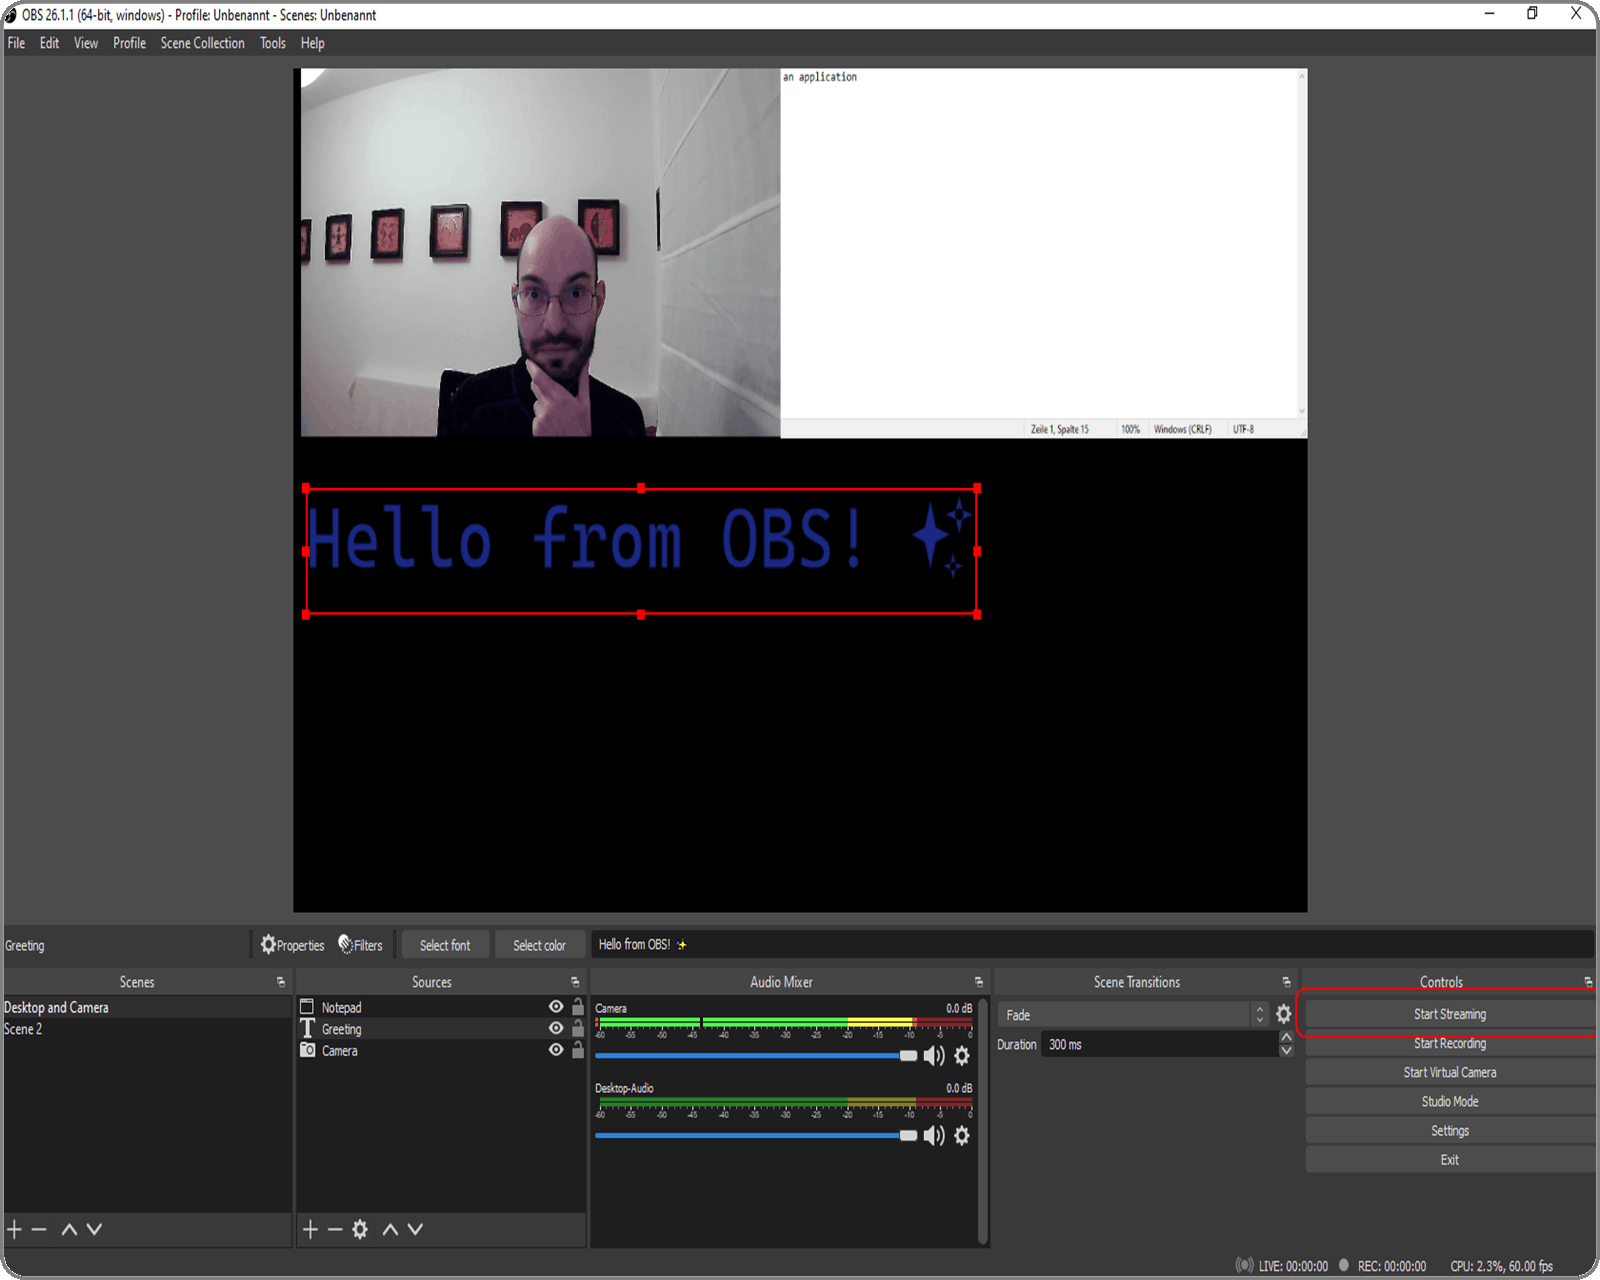 obs_13_youtube_start_streaming_03.png